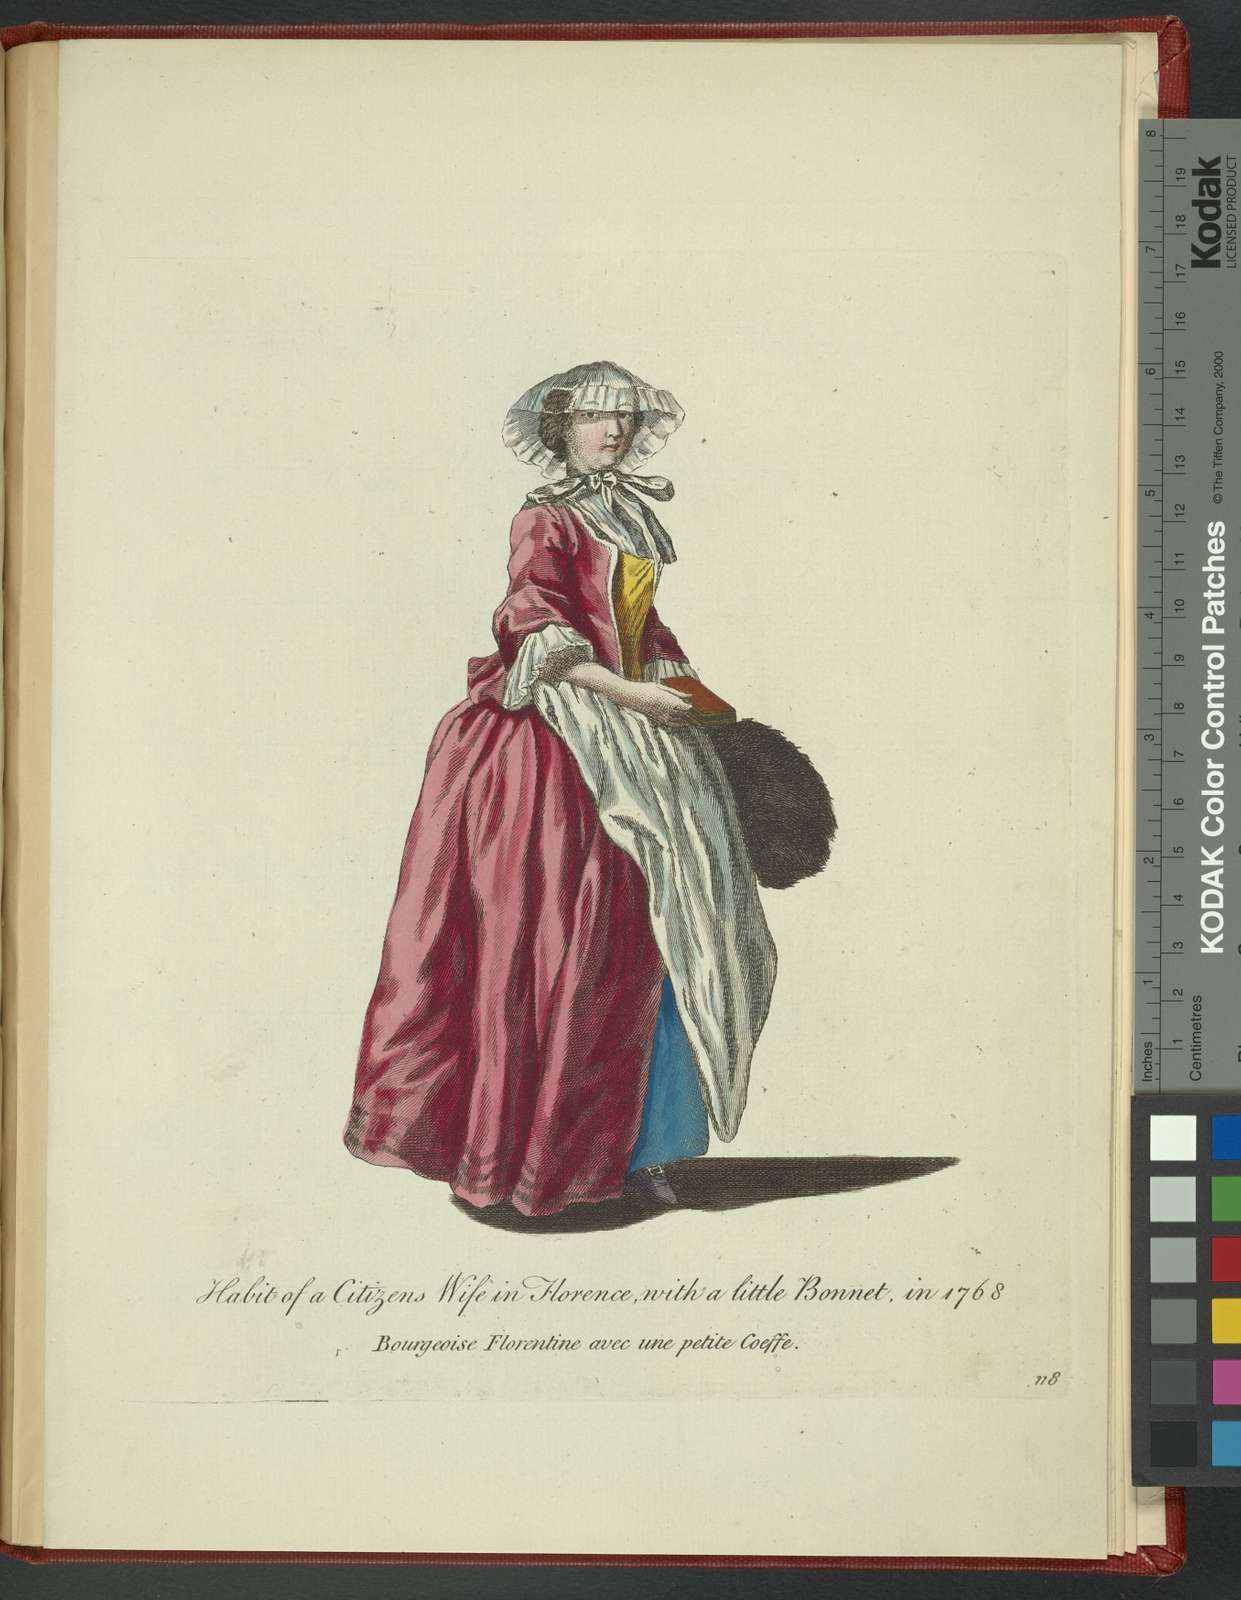 Habit of a citizen's wife in Florence, with a little bonnet, in 1768. Bourgeoise Florentine avec une petite coeffe.